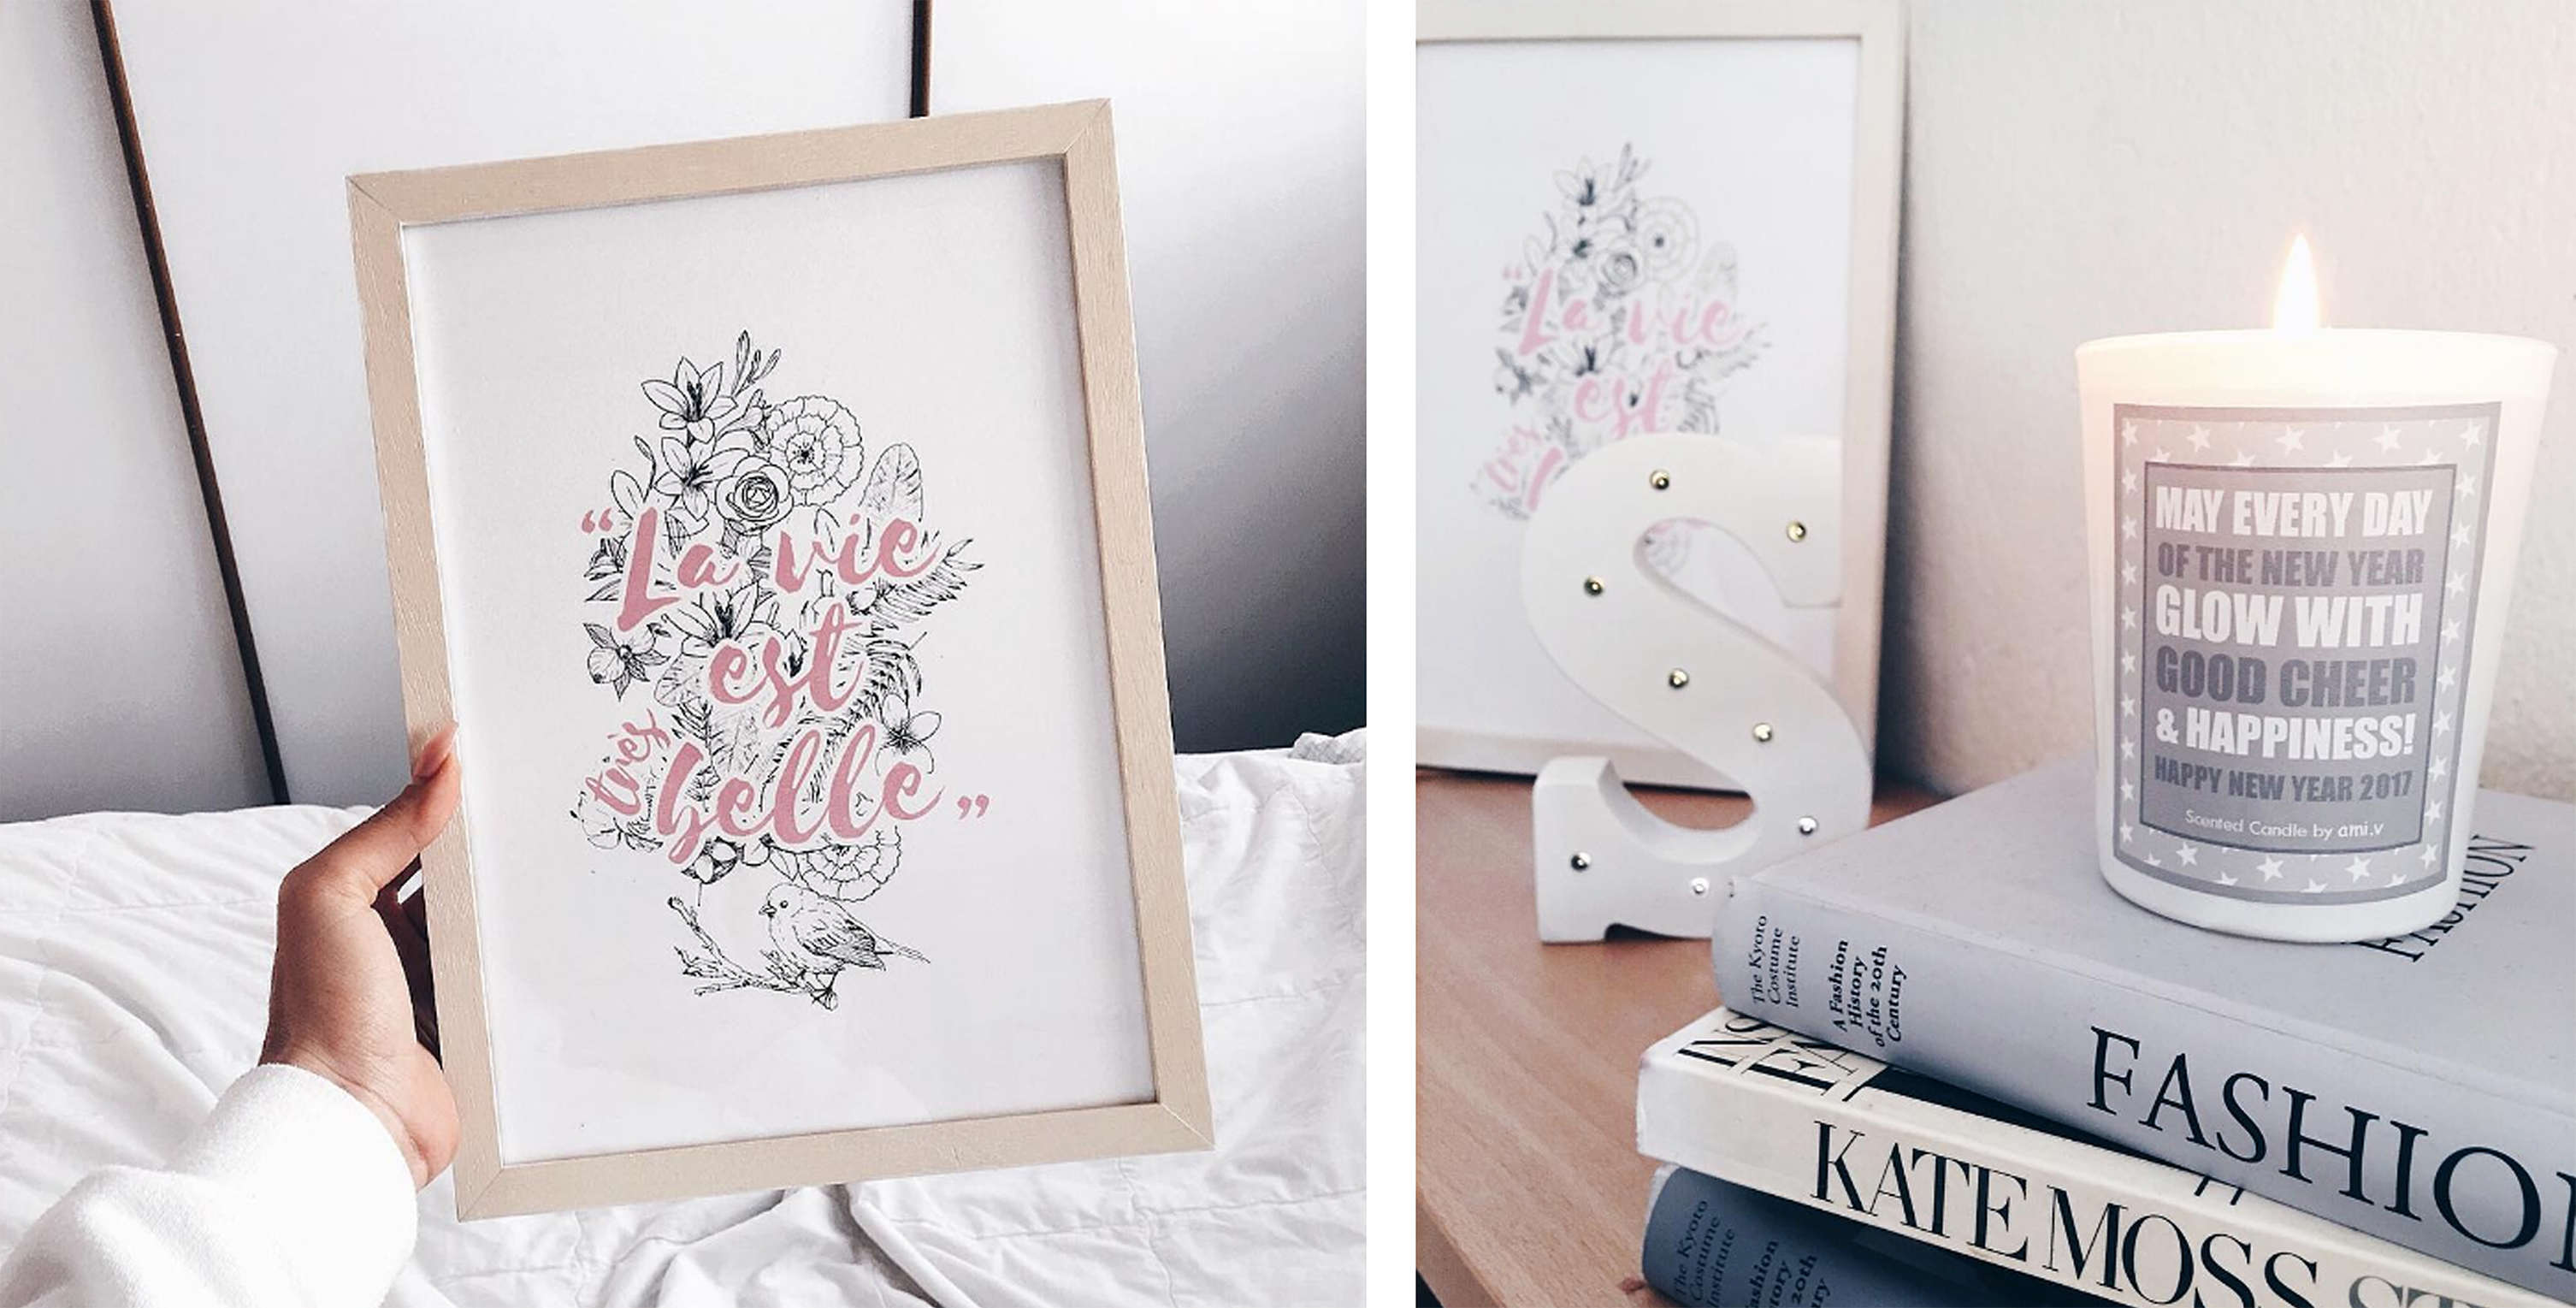 ART PRINTS FOR HER